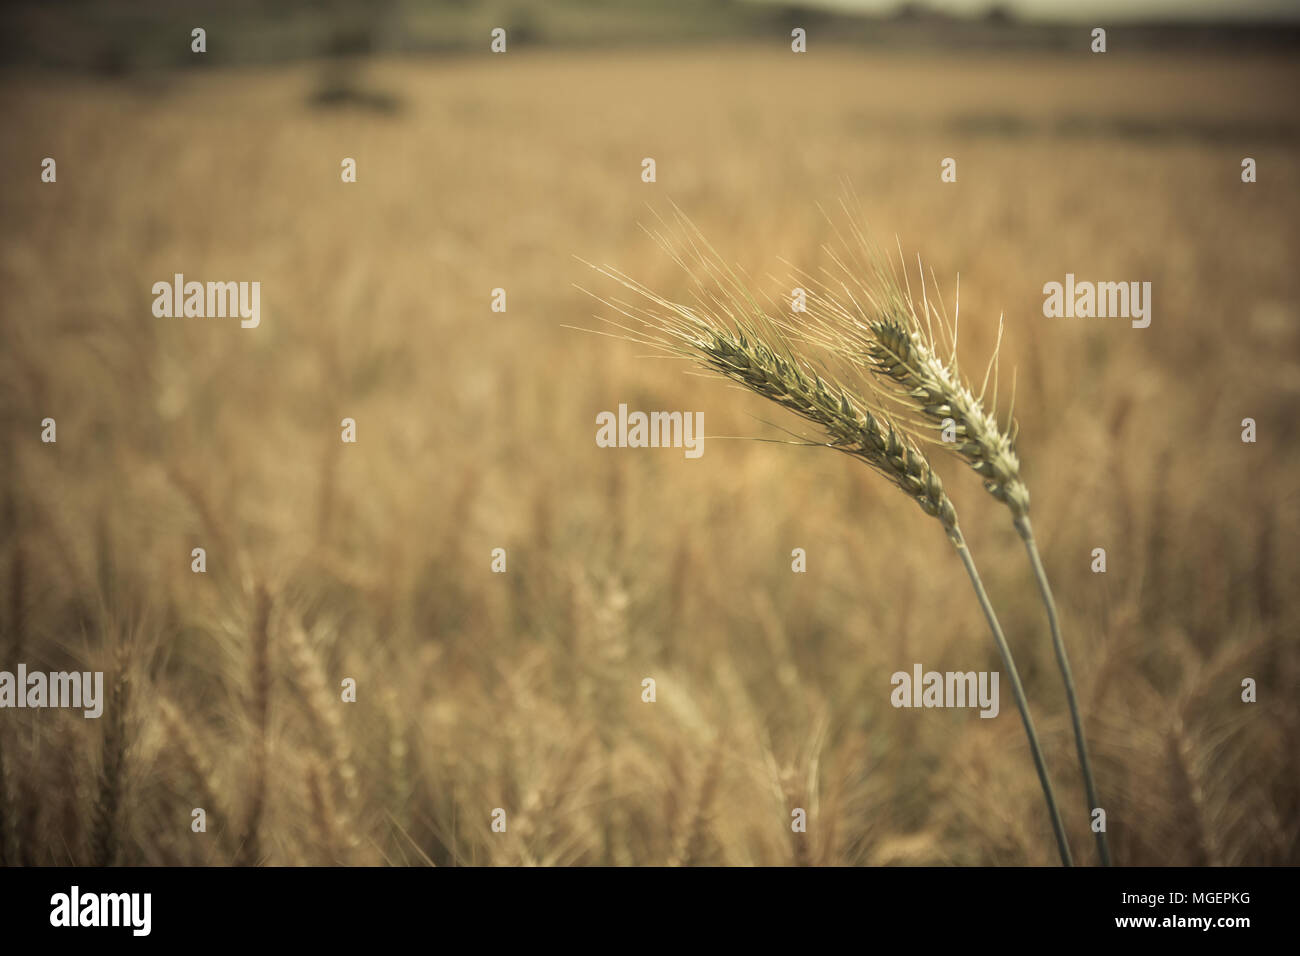 Close up of green-yellow wheat crop. Blurred background. - Stock Image